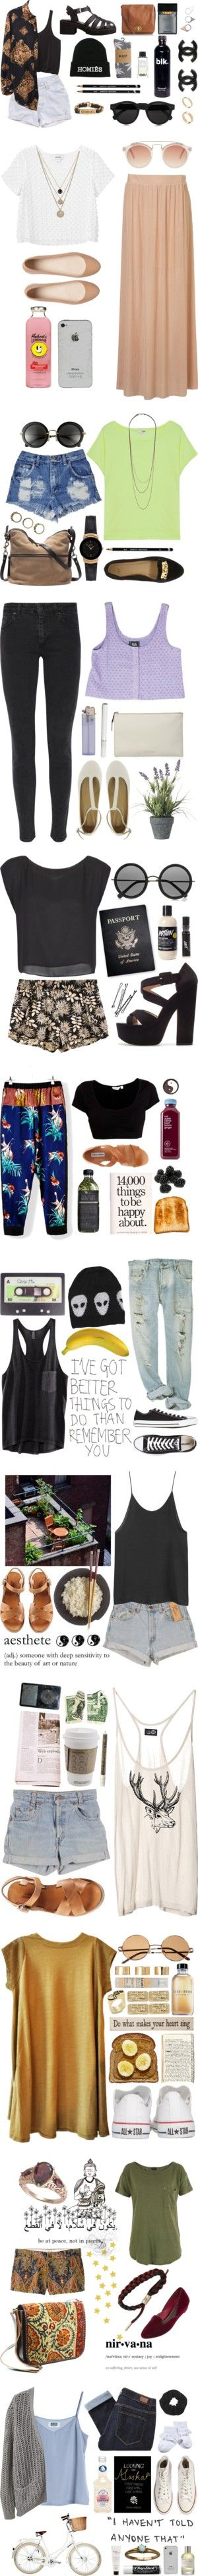 """""""Favorites"""" by mackenziemiller1234 ❤ liked on Polyvore"""